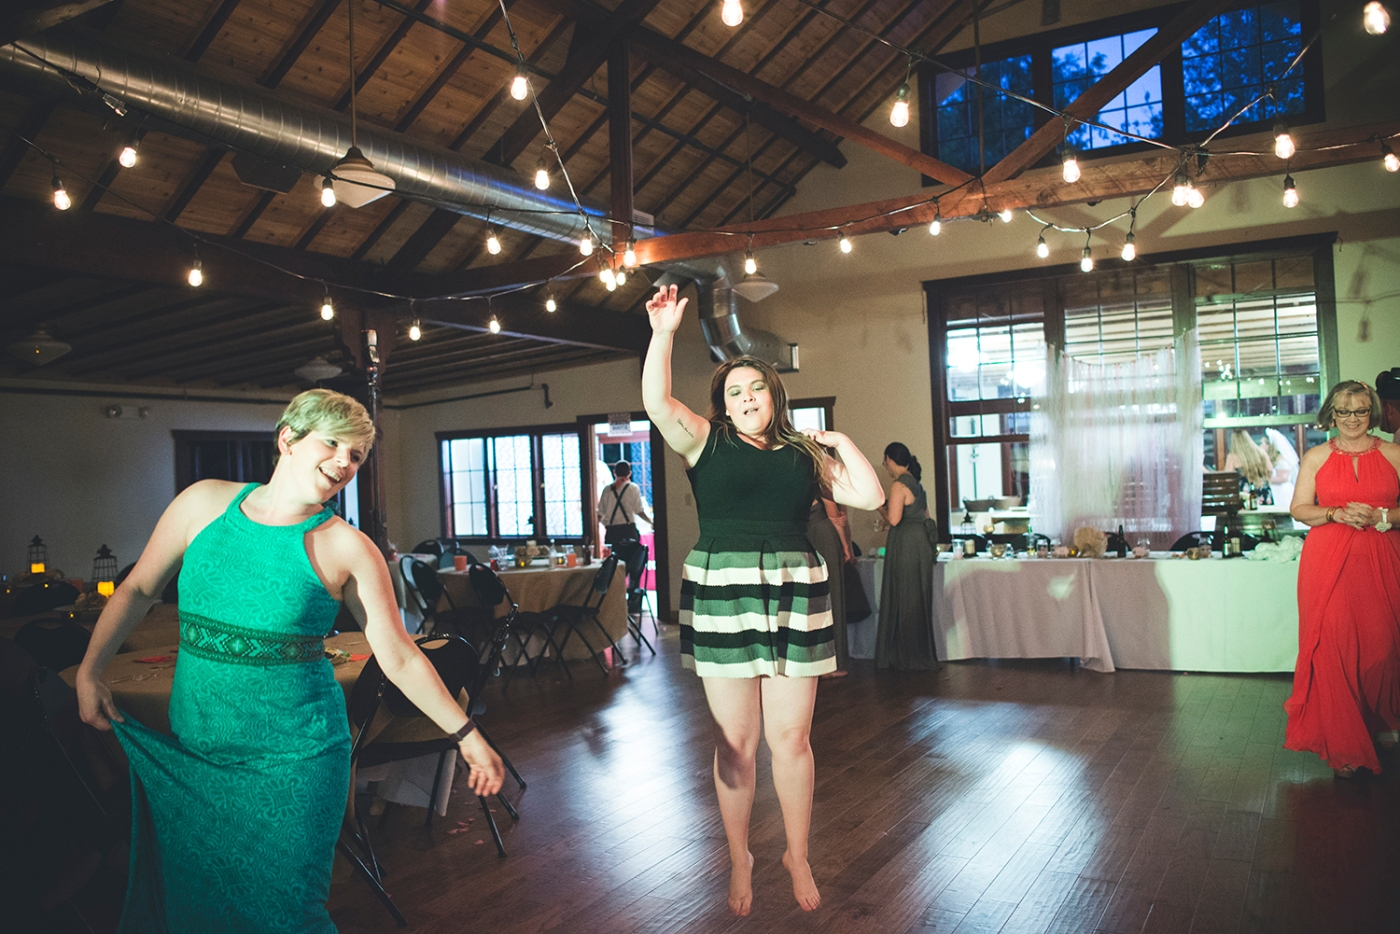 Jane_S_Seattle_photography_Kadie_and_Steve_2016_Des_Moines_Marina_Wedding_DSC_2673